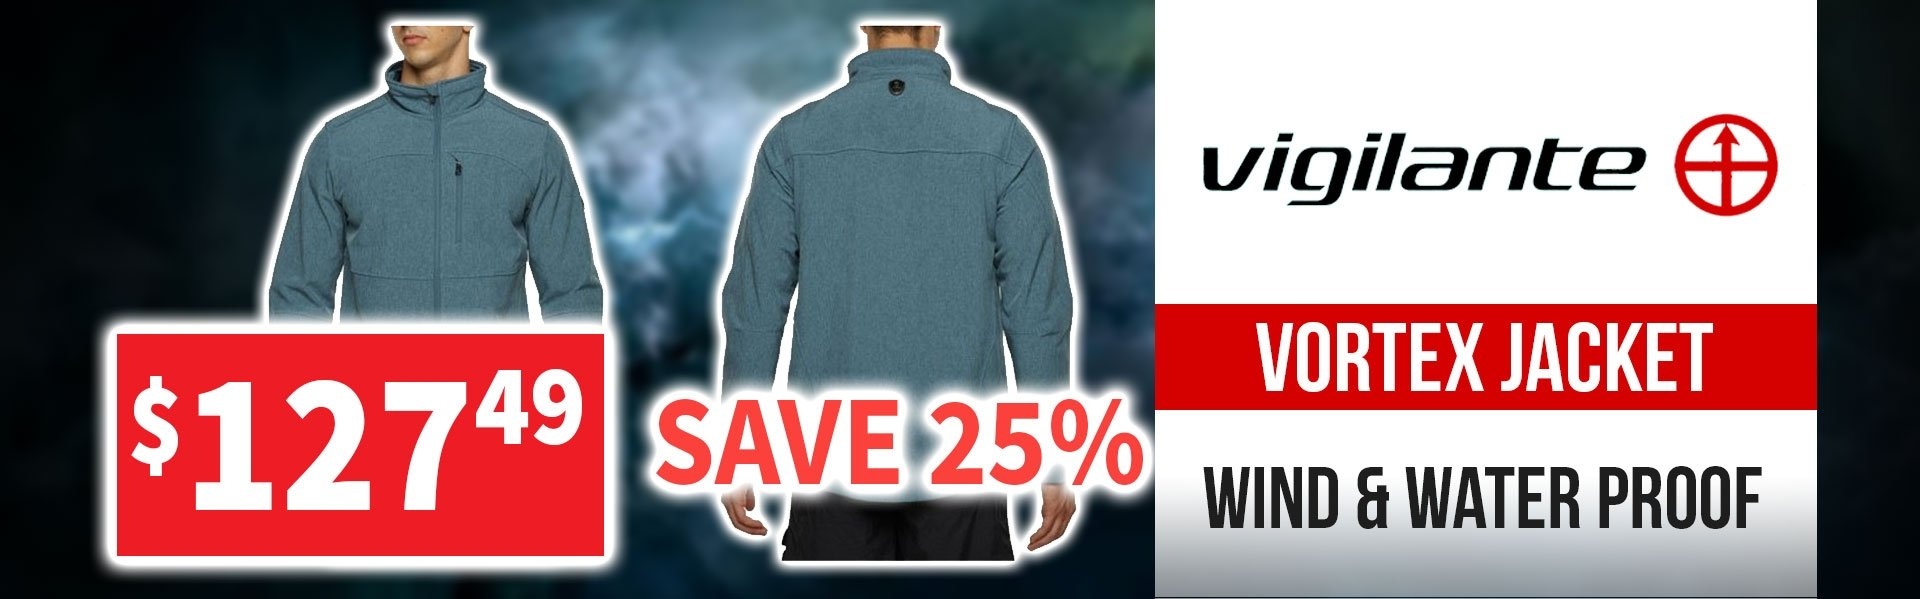 Vigilante Vortex Jacket 25% off